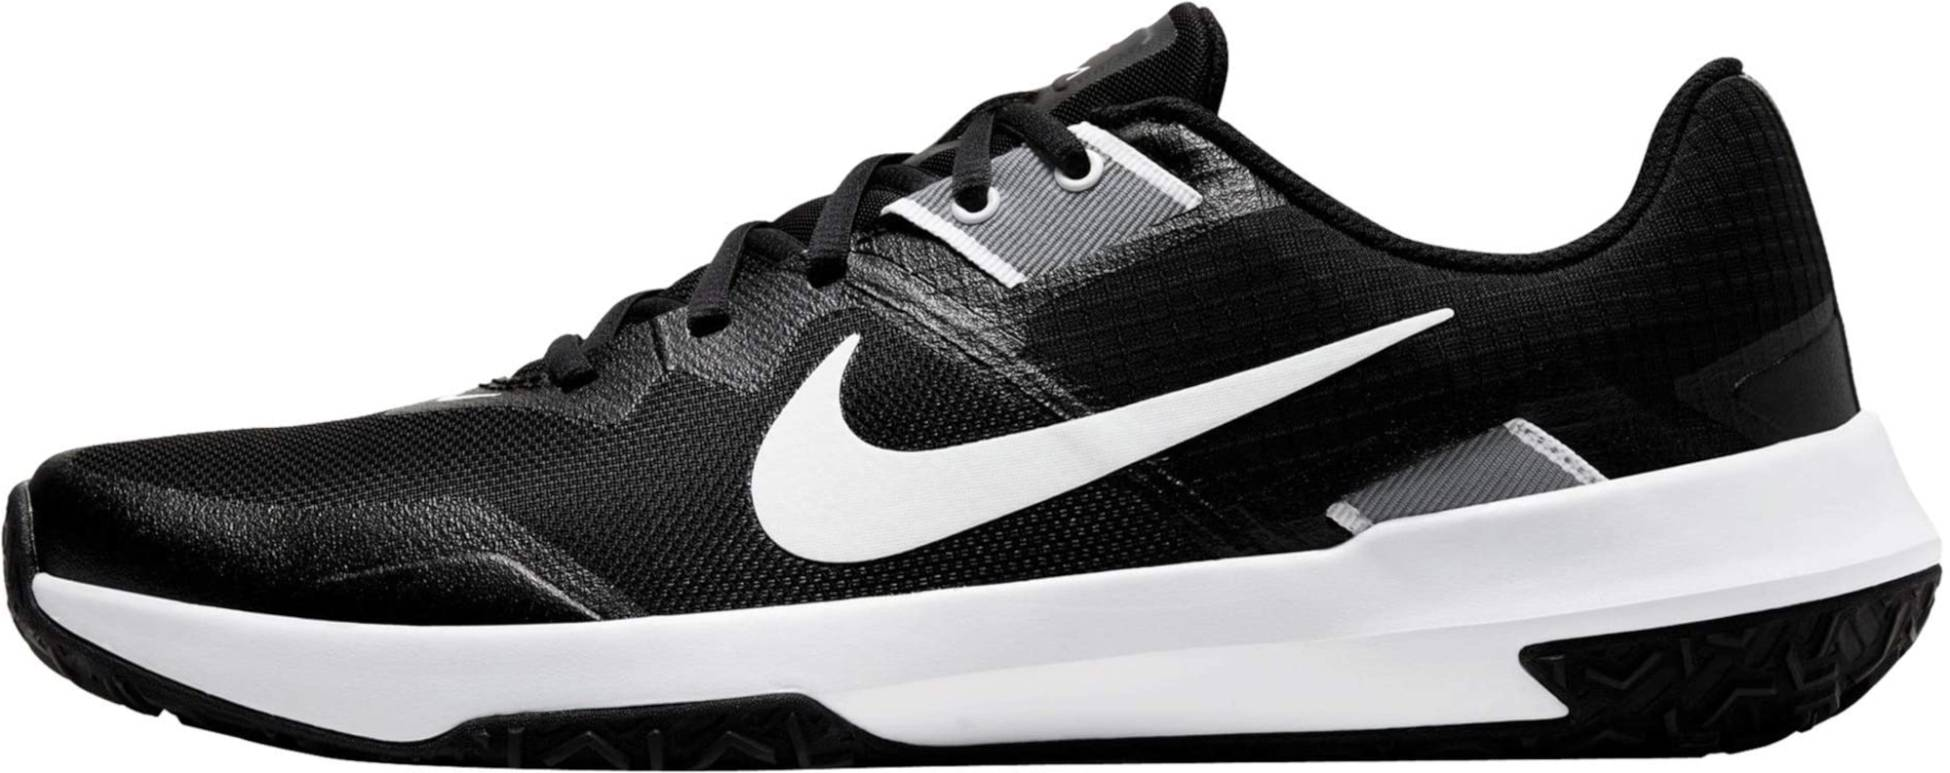 tortura Espolvorear Caso  Nike Varsity Compete TR 3 - Deals ($61), Facts, Reviews (2021) | RunRepeat